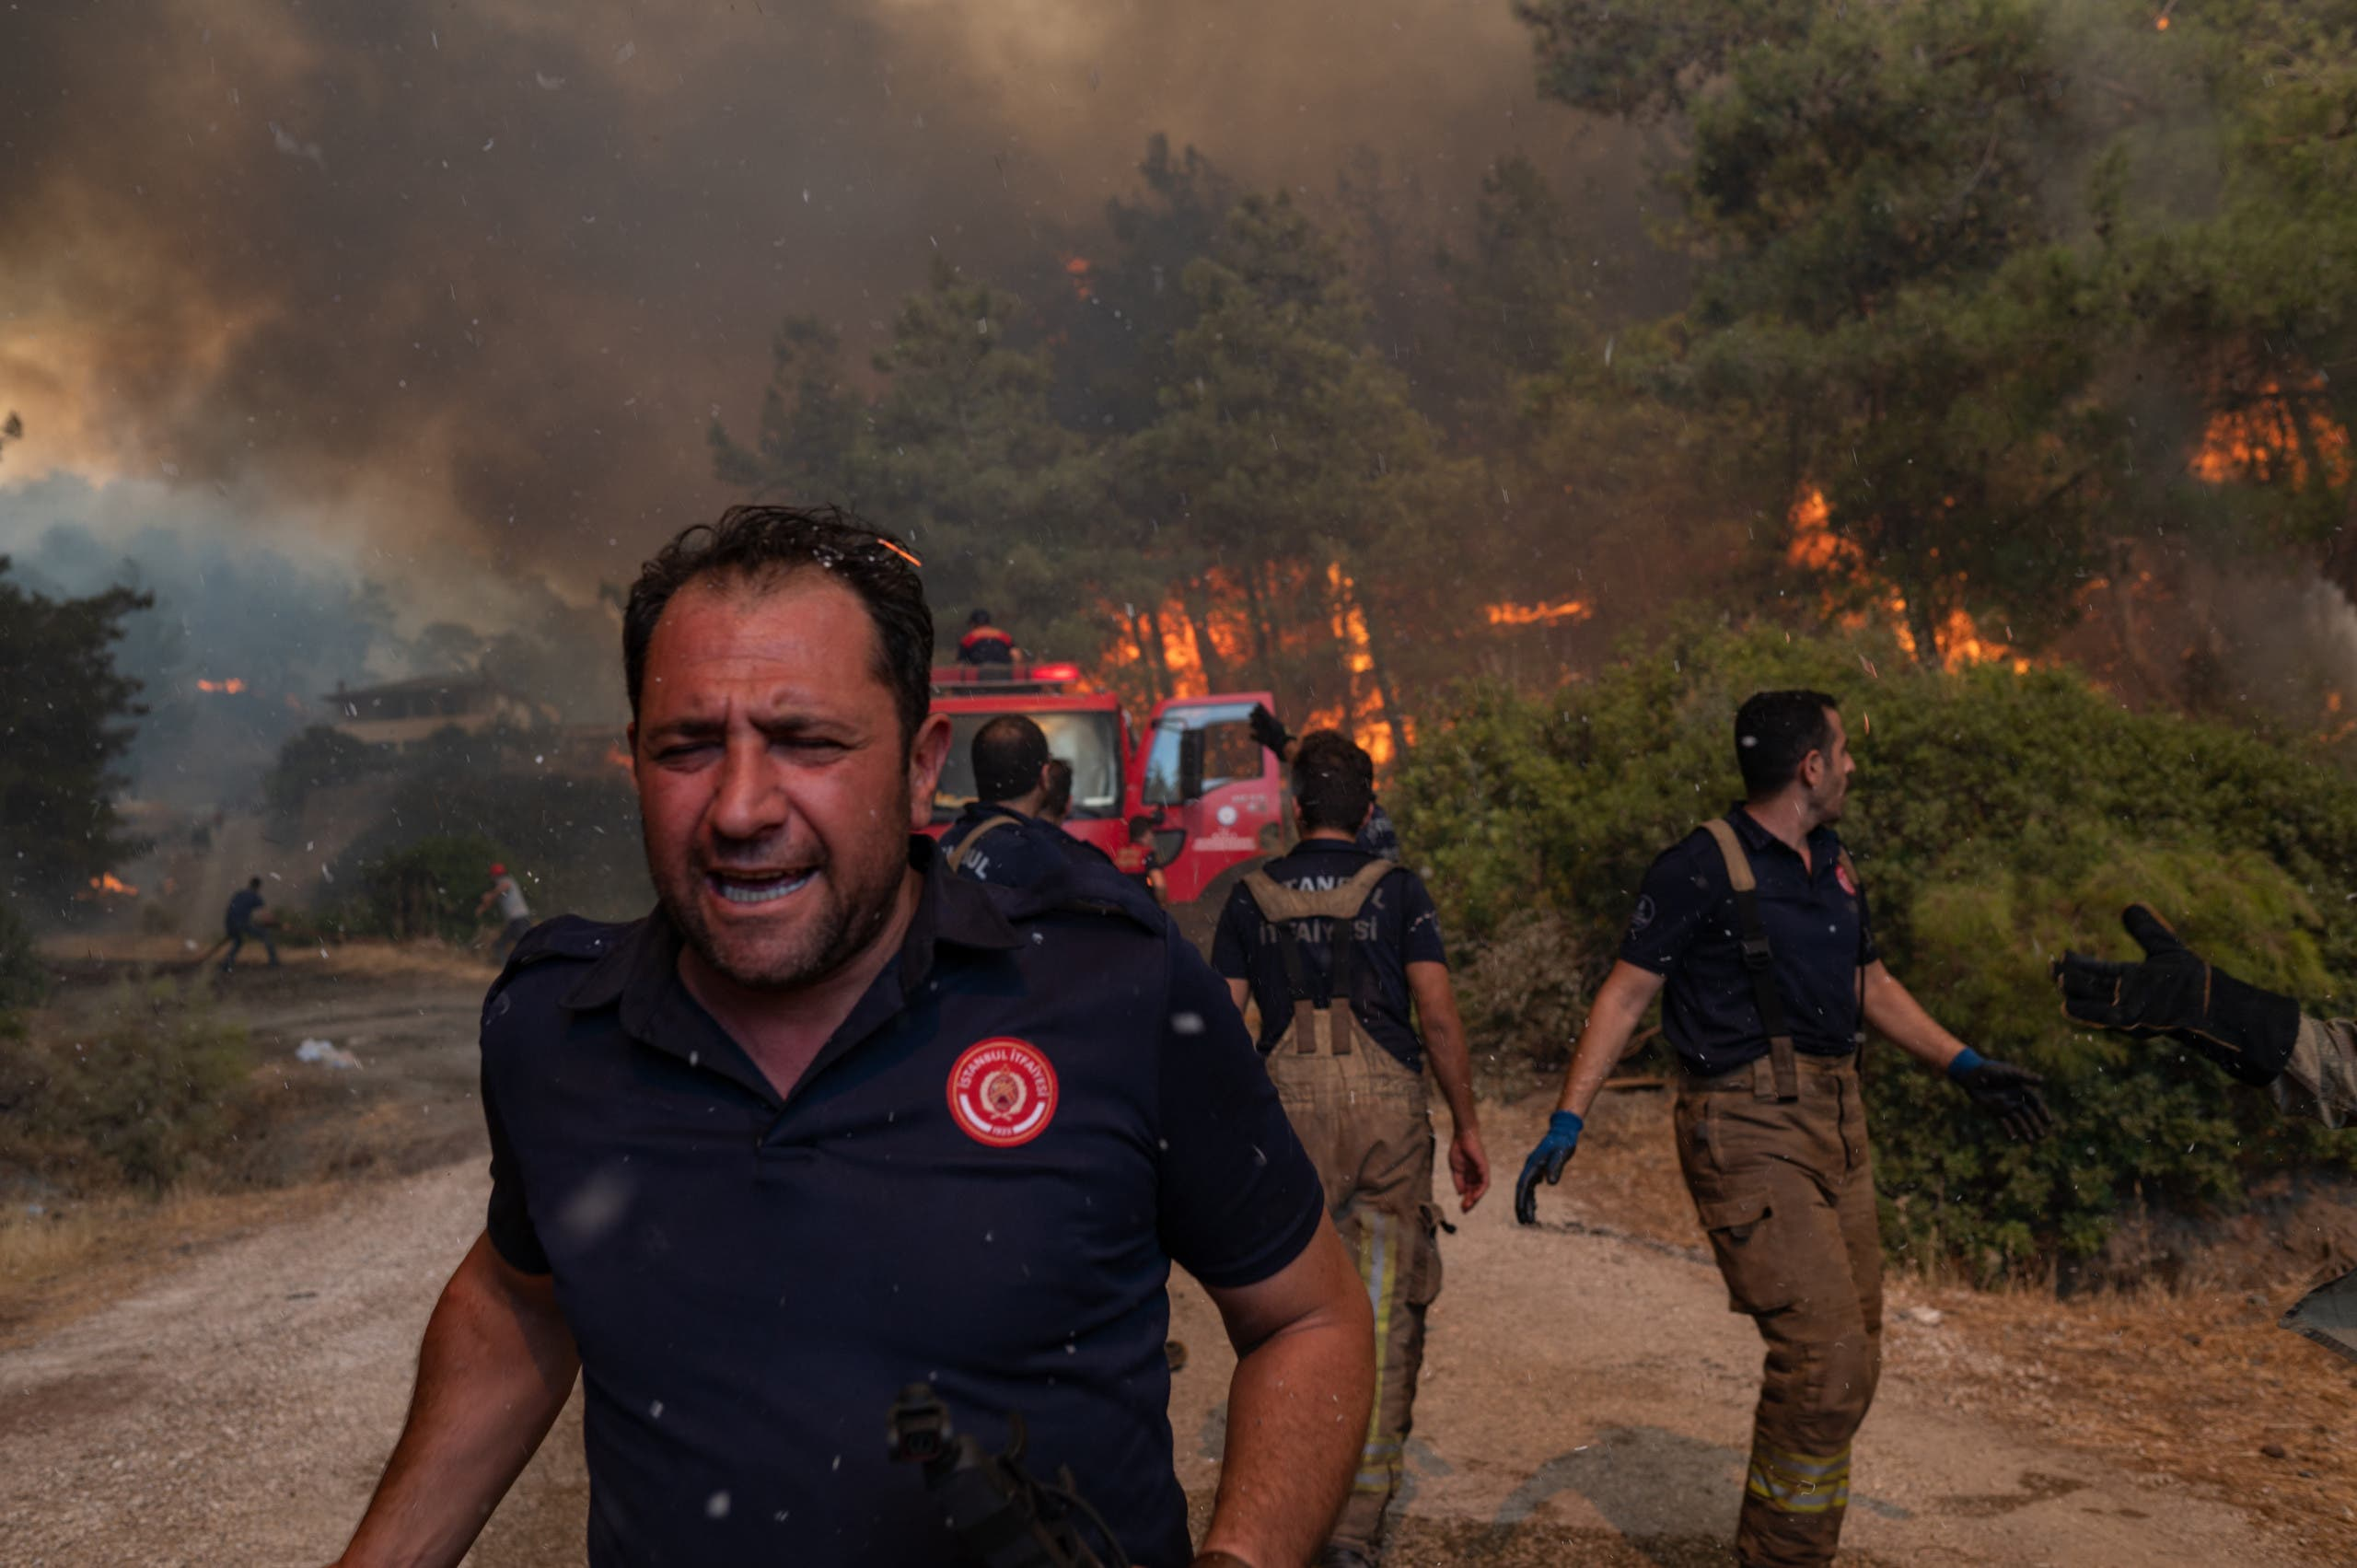 Firefighters battle a wildfire on August 2, 2021 in Mugla, Marmaris district, as the European Union sent help to Turkey and volunteers joined firefighters in battling a week of violent blazes. (AFP)